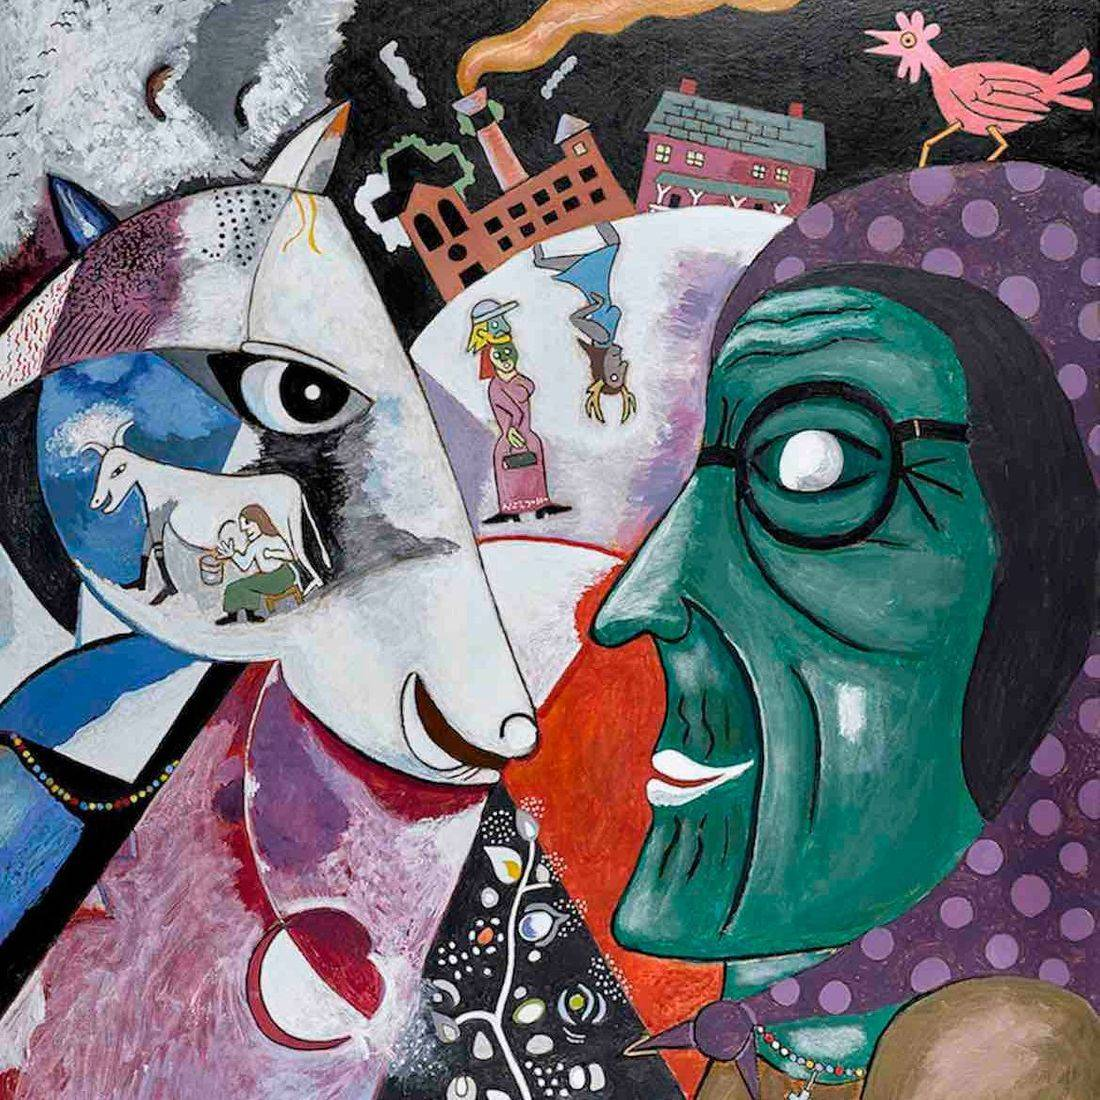 Marc Chagall, Village and I, Grandmother, Factory, Anthony Mill, Chicken, Pollution, Polka Dots, Babushka